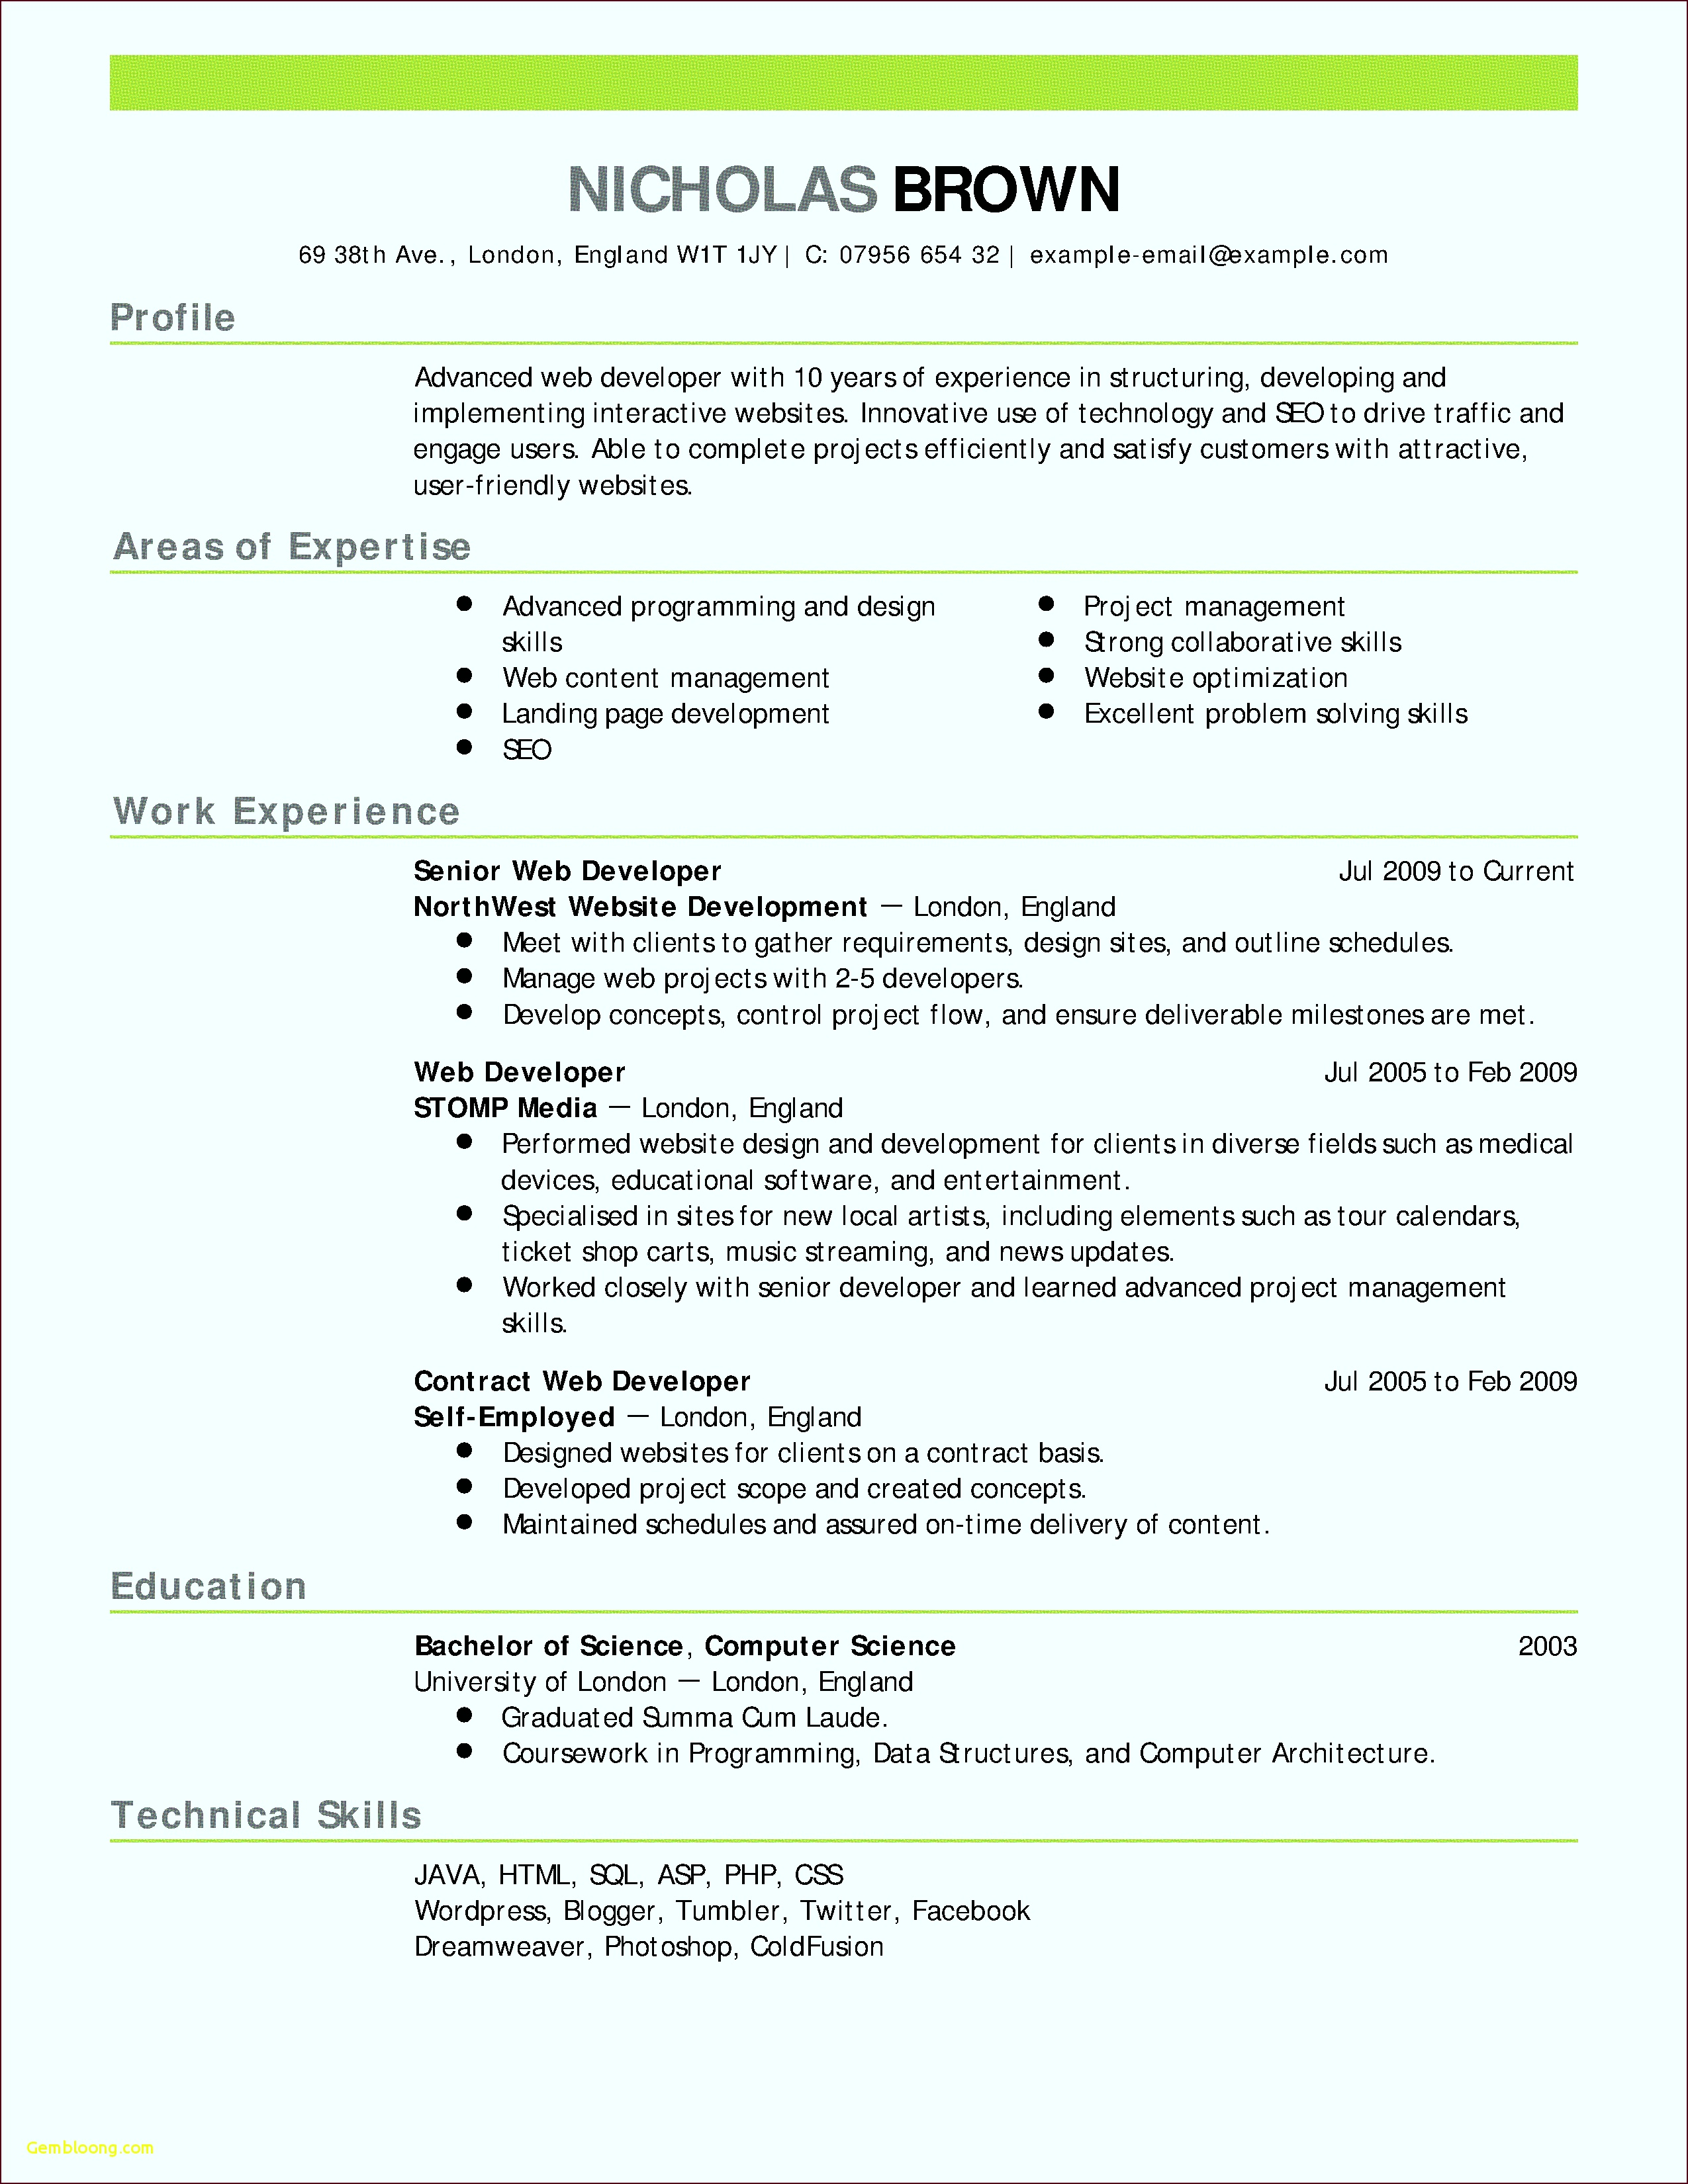 Job Resume Templates Download Download Professional Job Resume Template Od Specialist Cover Letter Lead itise